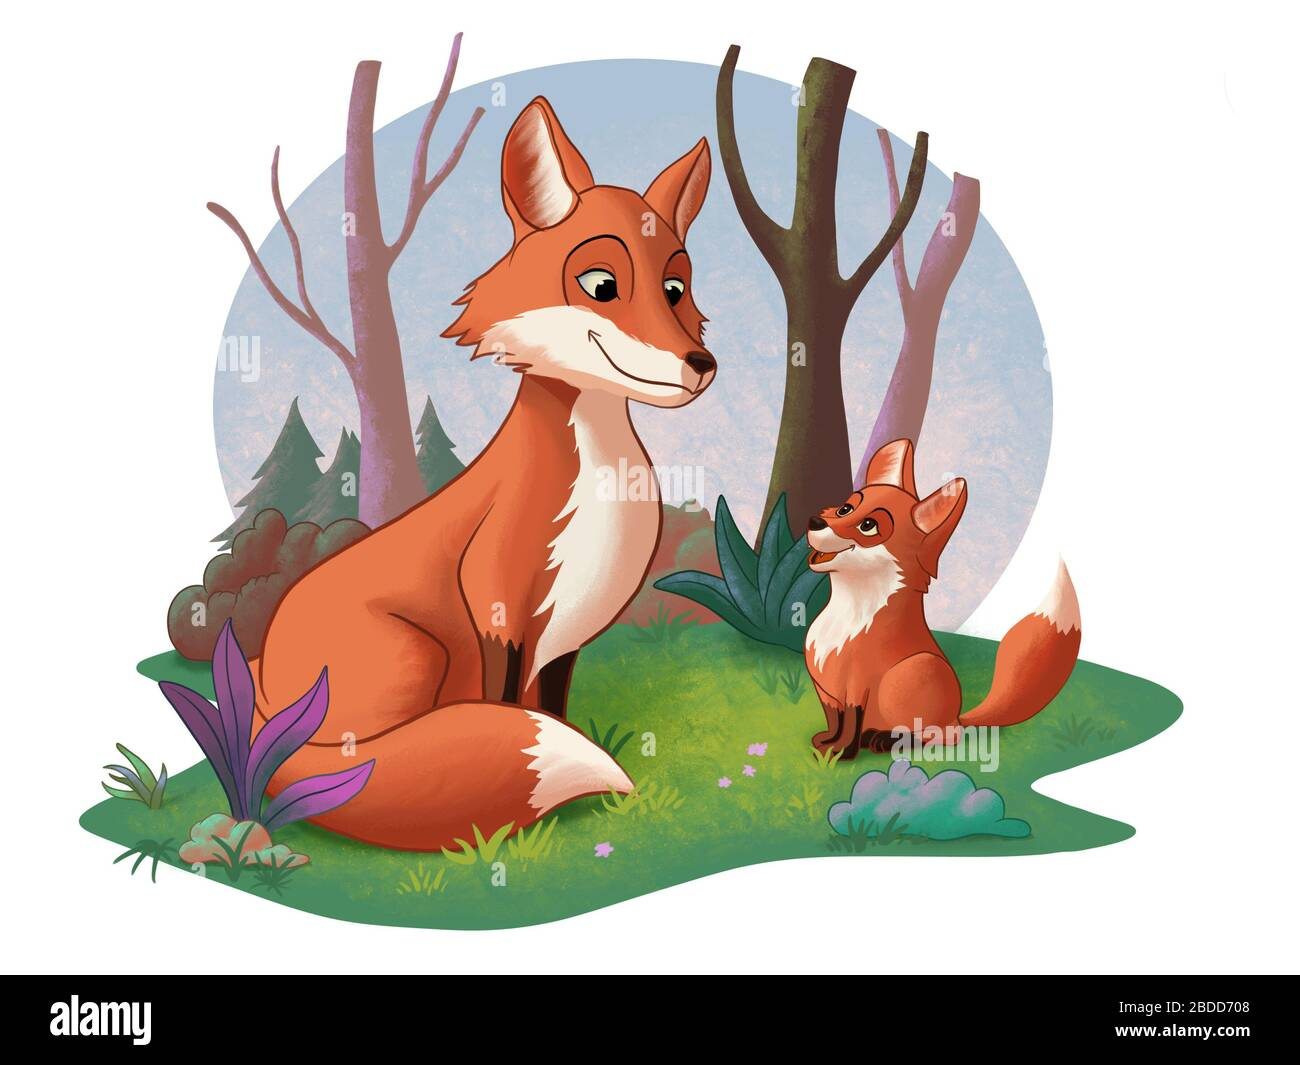 Family Relationship Cartoon High Resolution Stock Photography And Images Alamy